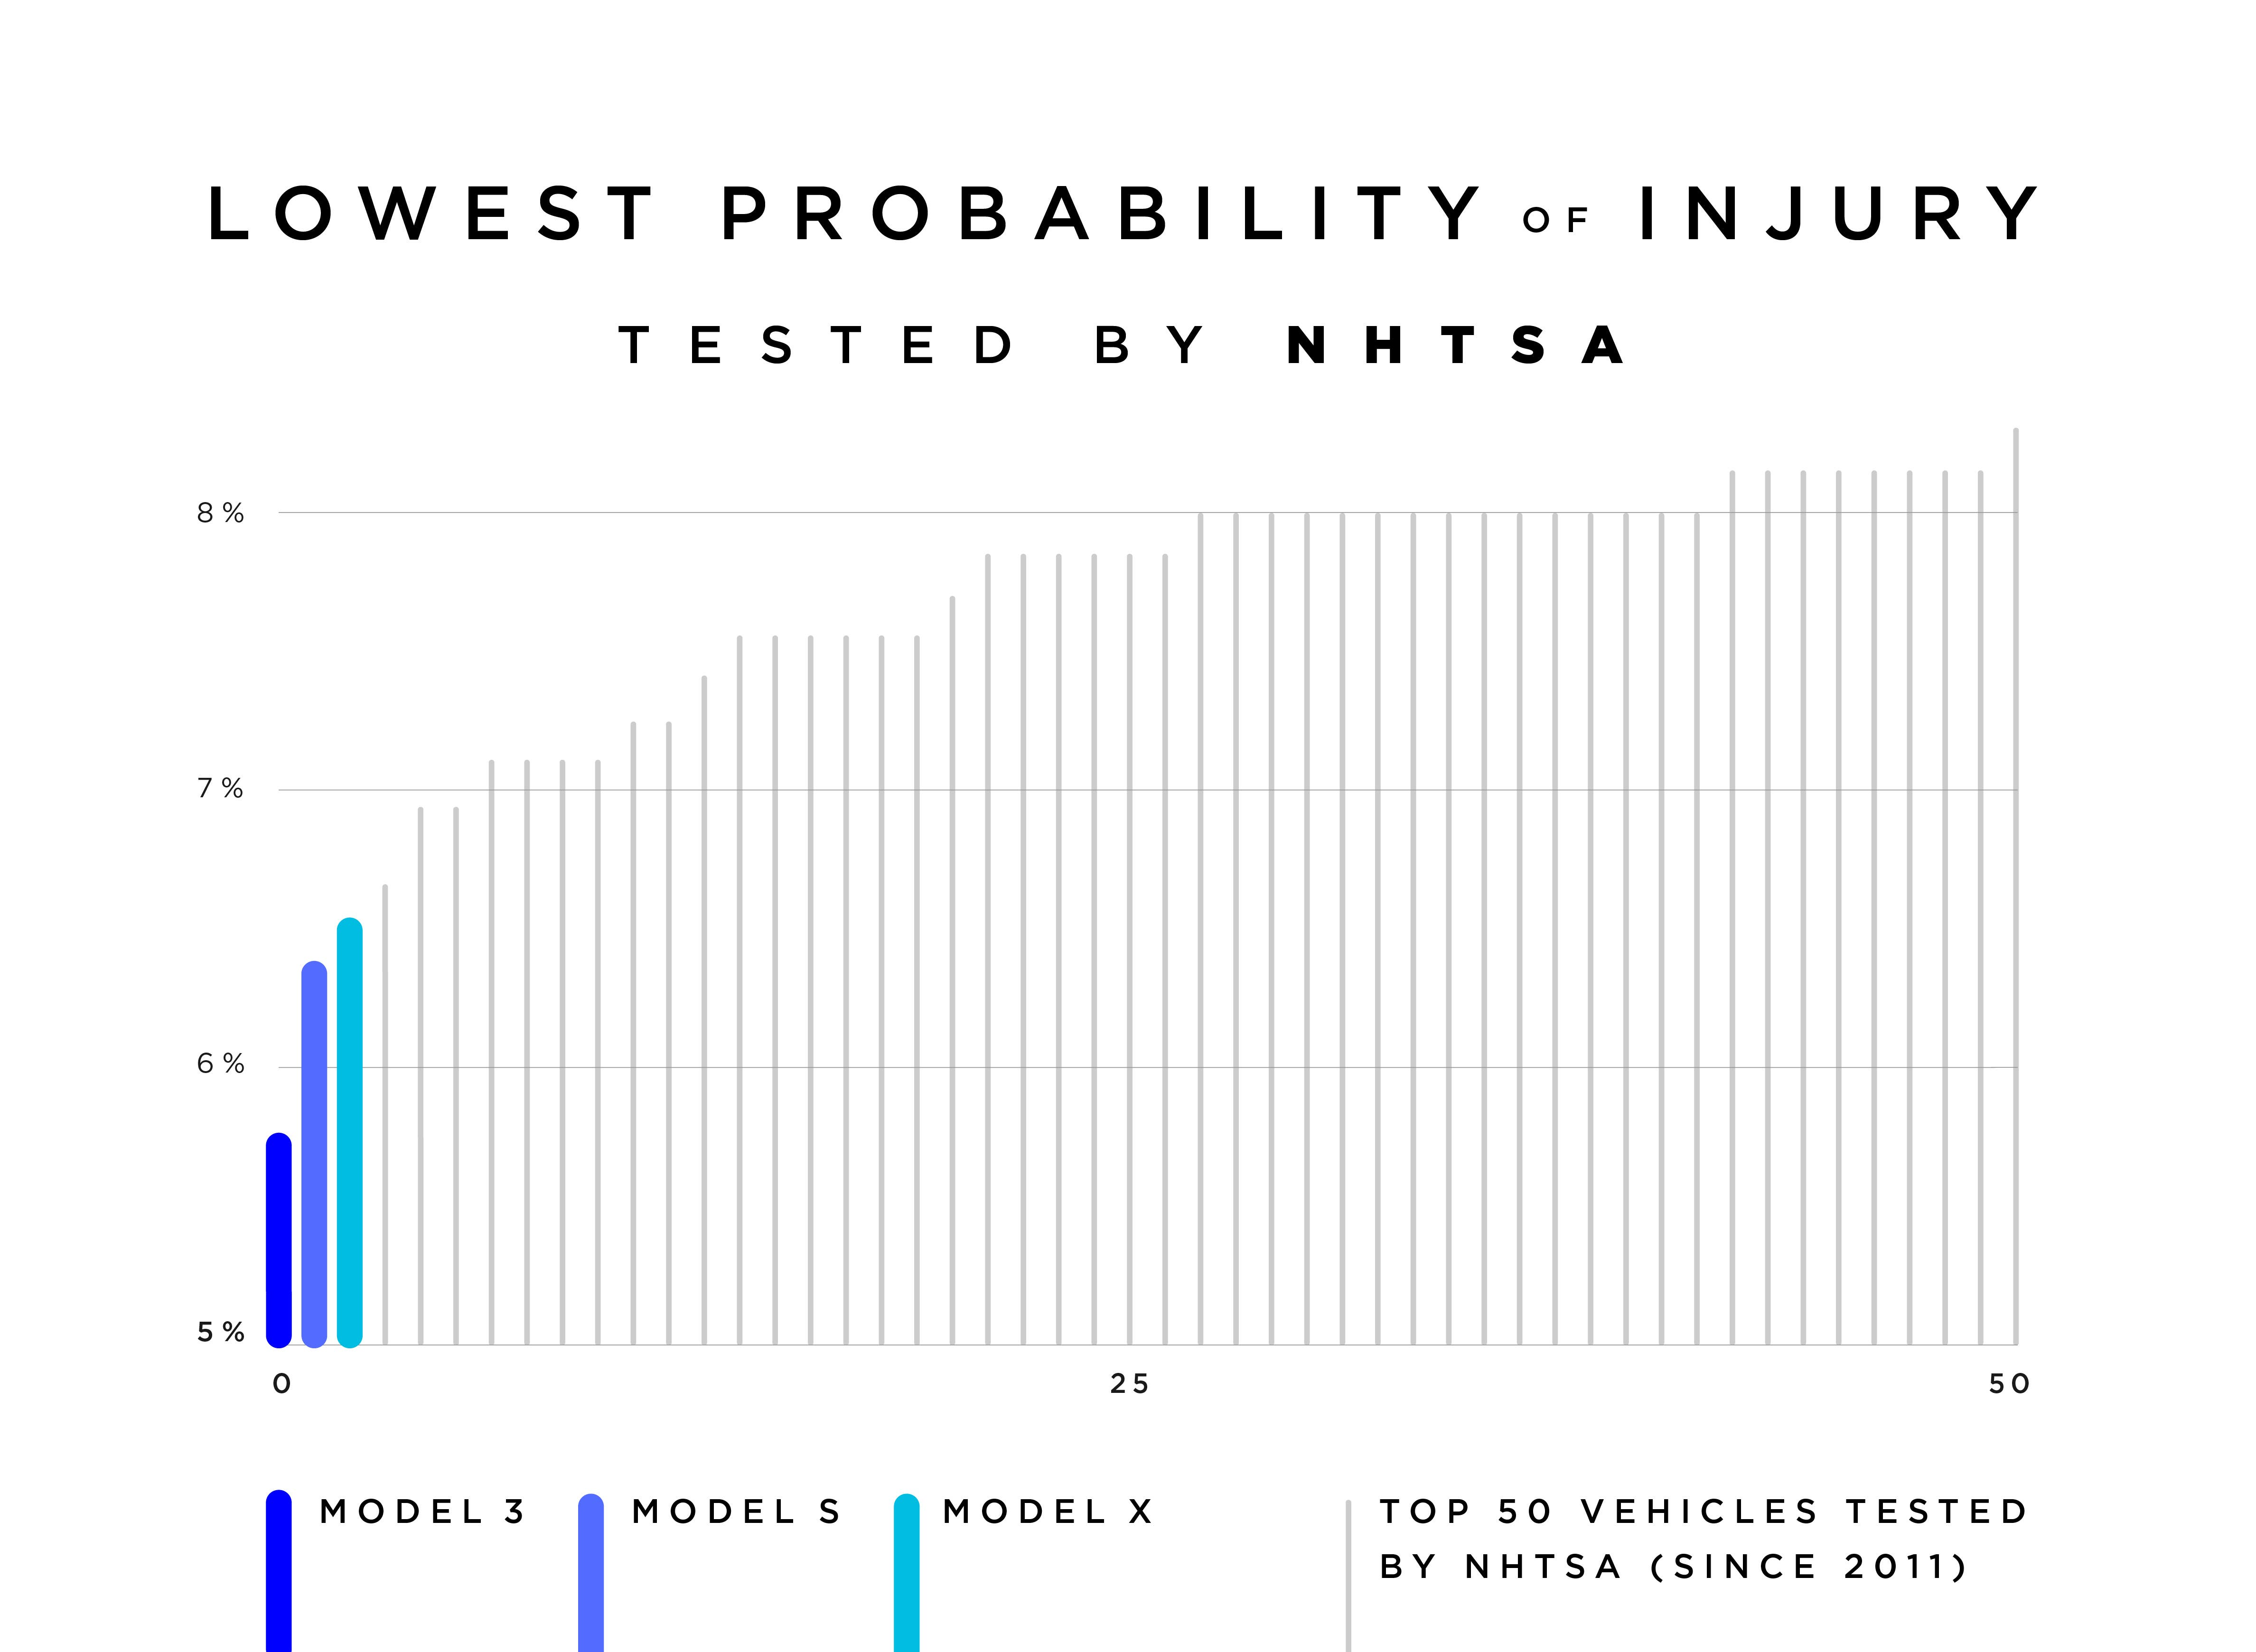 If You Have An Accident In A Model 3 Your Risk Of Injury Is Very Low